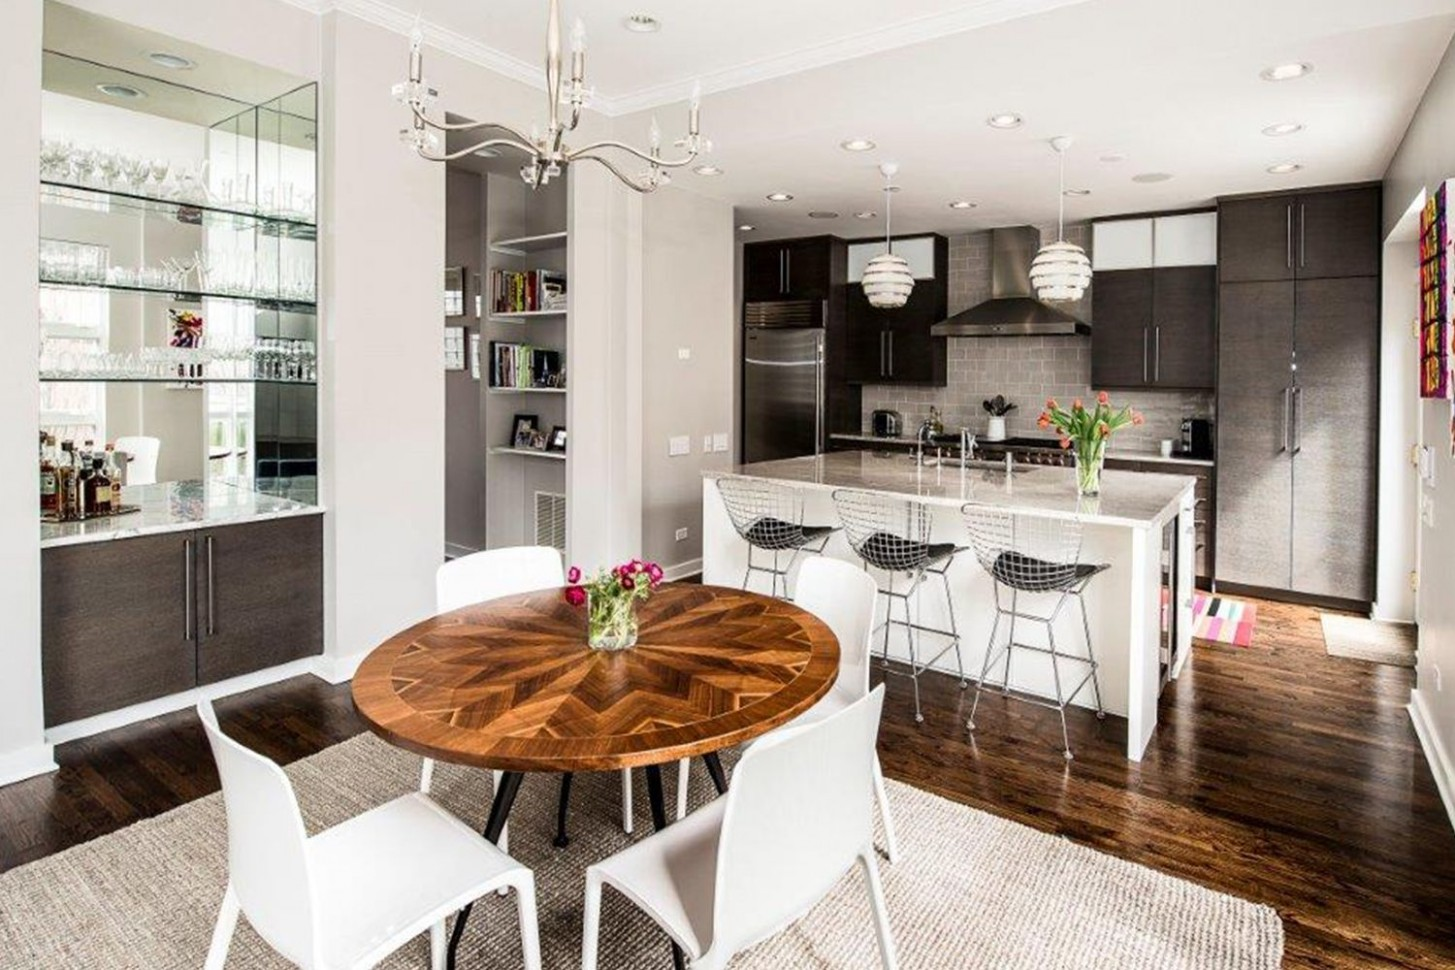 Eat-in Kitchen Ideas for Your Home - Eat-in Kitchen Designs - Dining Room Kitchen Ideas